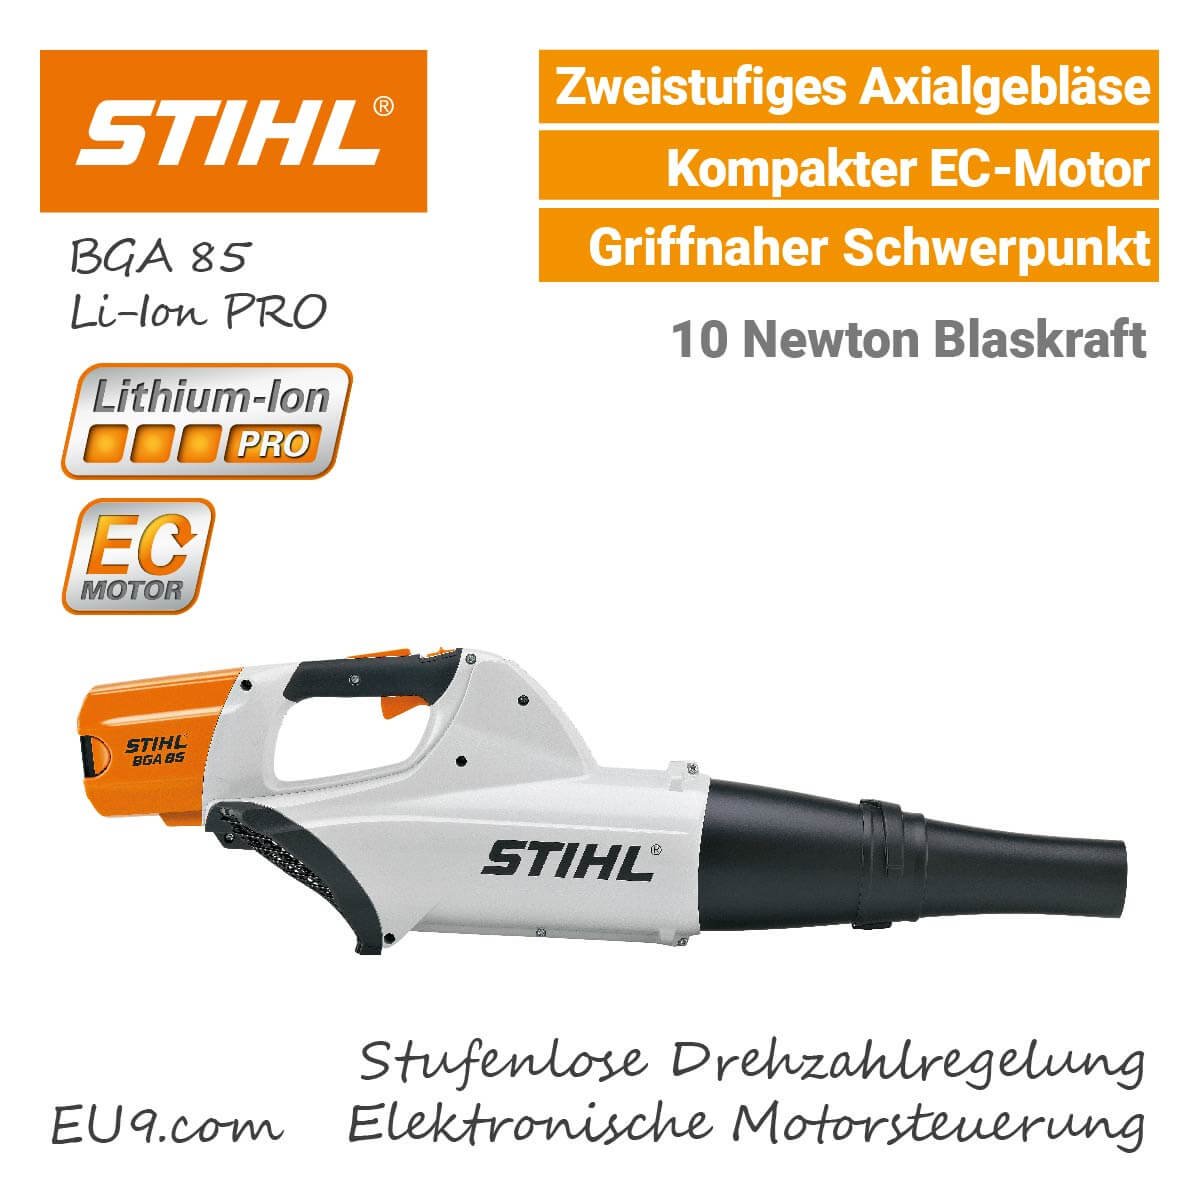 stihl bga 85 akku laubbl ser li ion pro bei eu9 kaufen. Black Bedroom Furniture Sets. Home Design Ideas